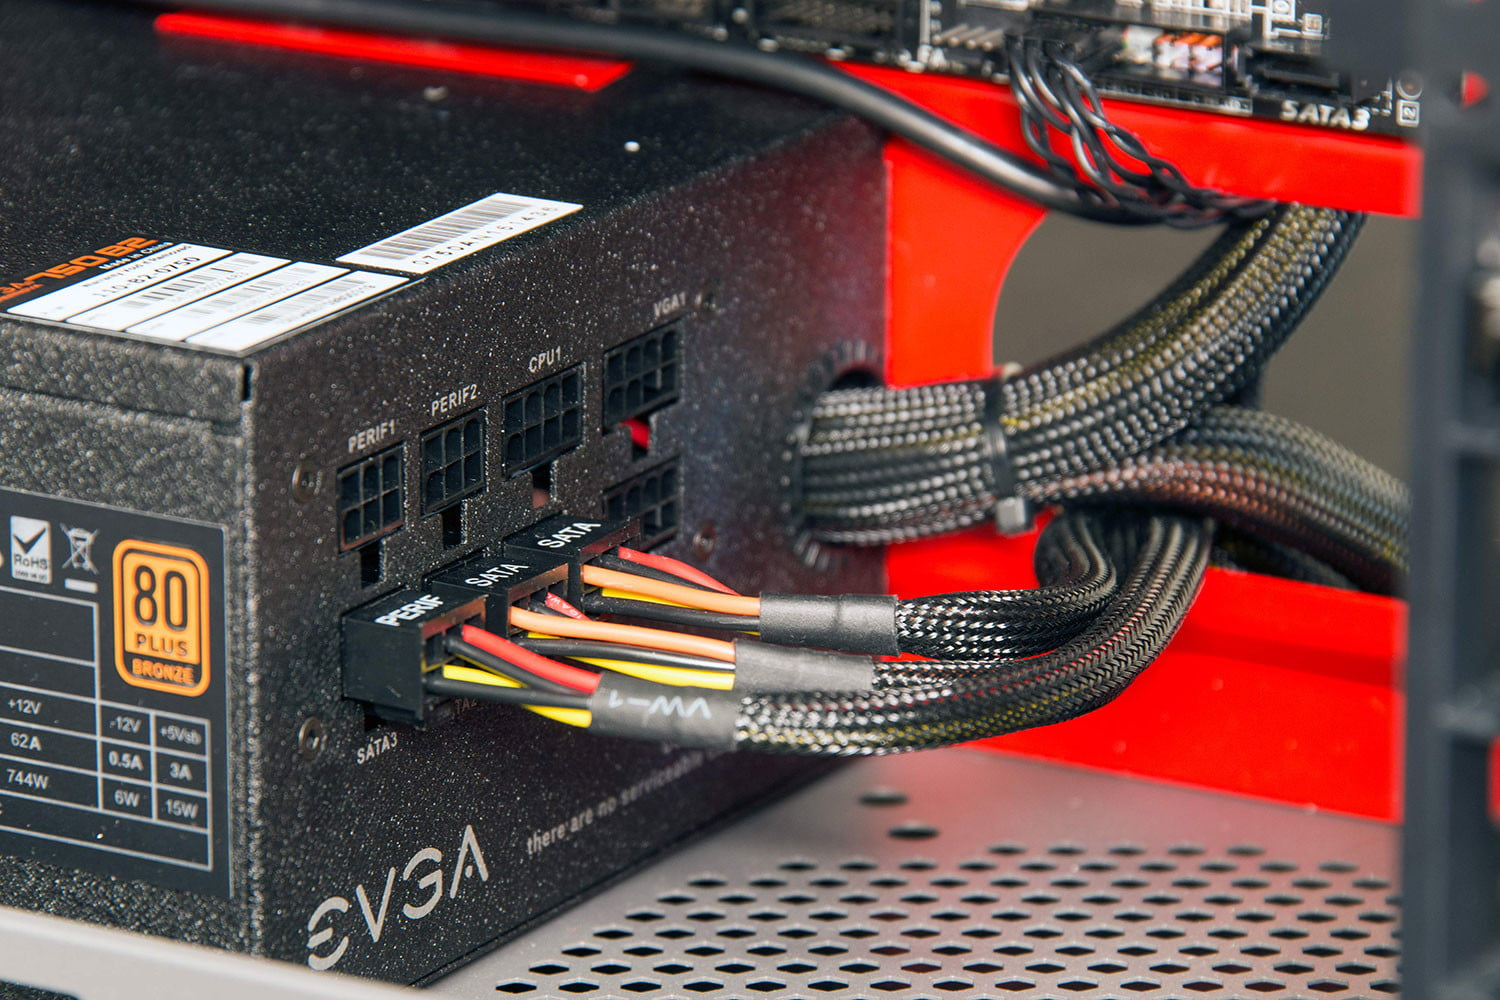 Modular cables connected to PC power supply.